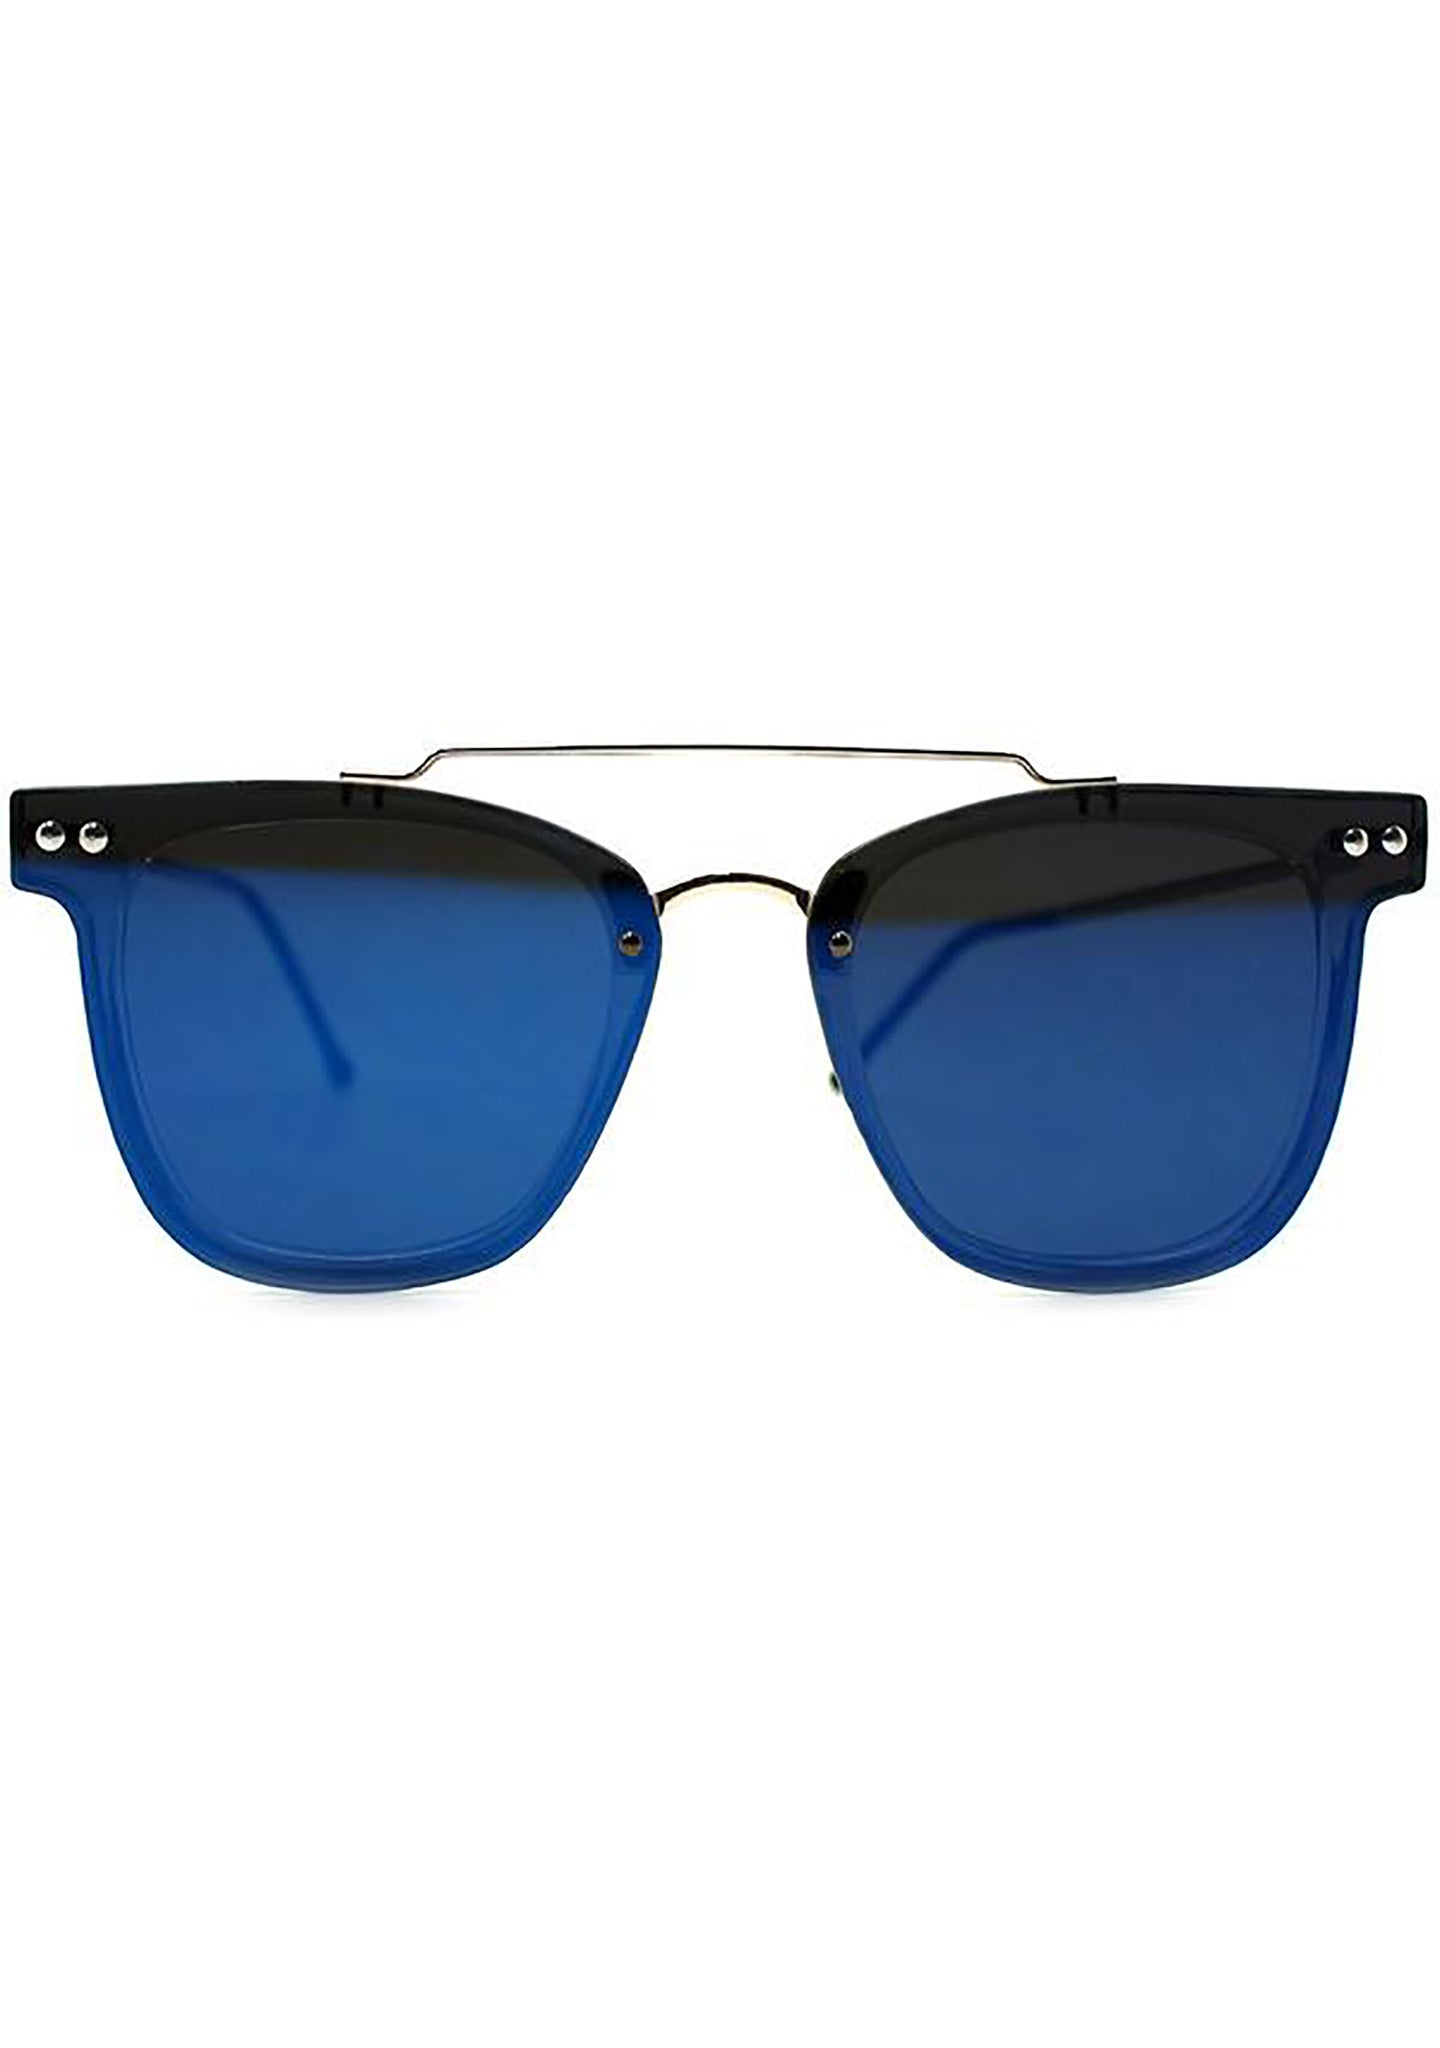 Spitfire FTL 2 Sunglasses in Clear/Blue